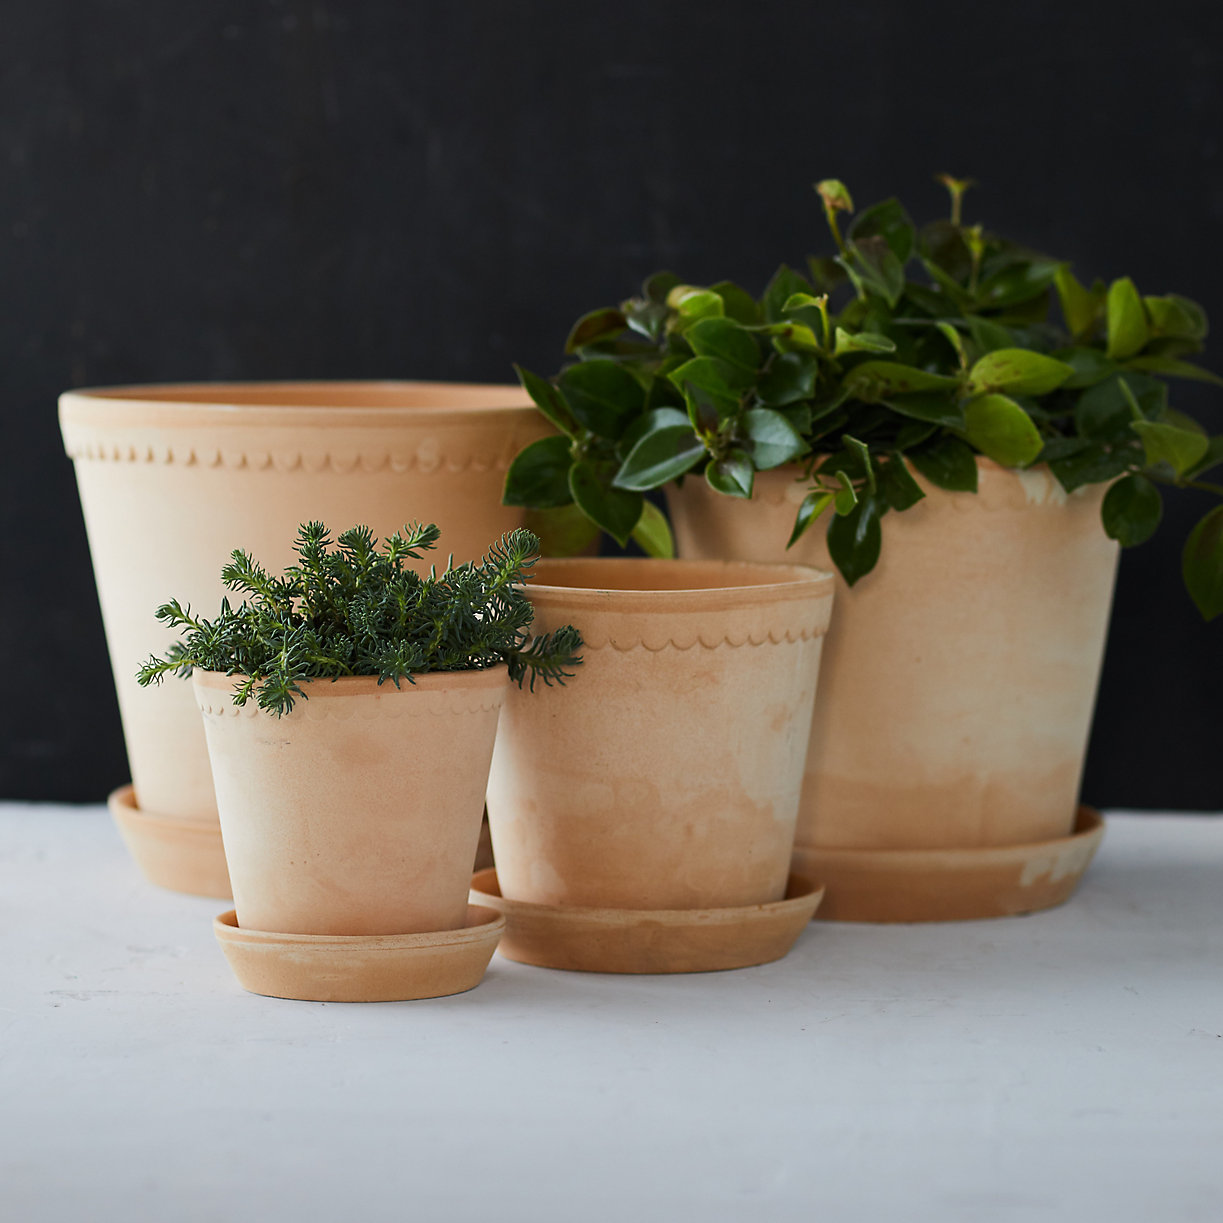 Scalloped pots from Terrain